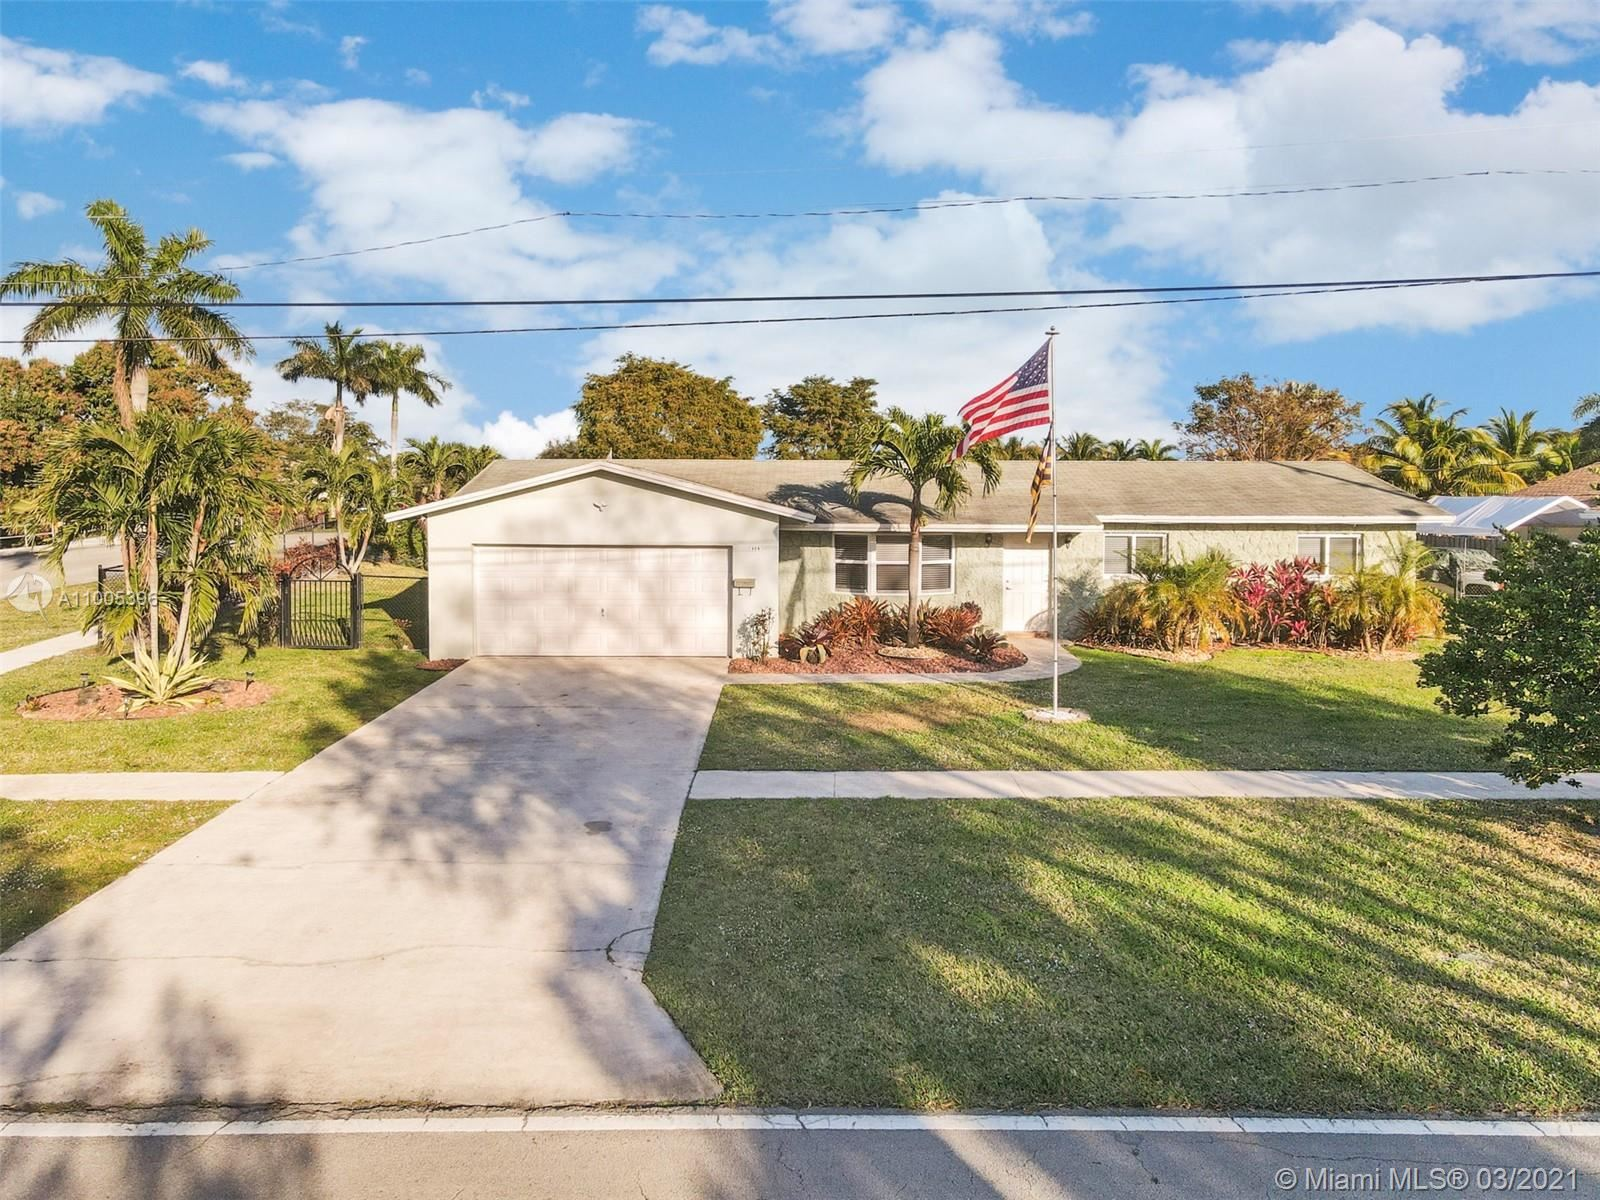 Photo of 320 NW 43rd Ave, Coconut Creek, FL 33066 (MLS # A11005396)